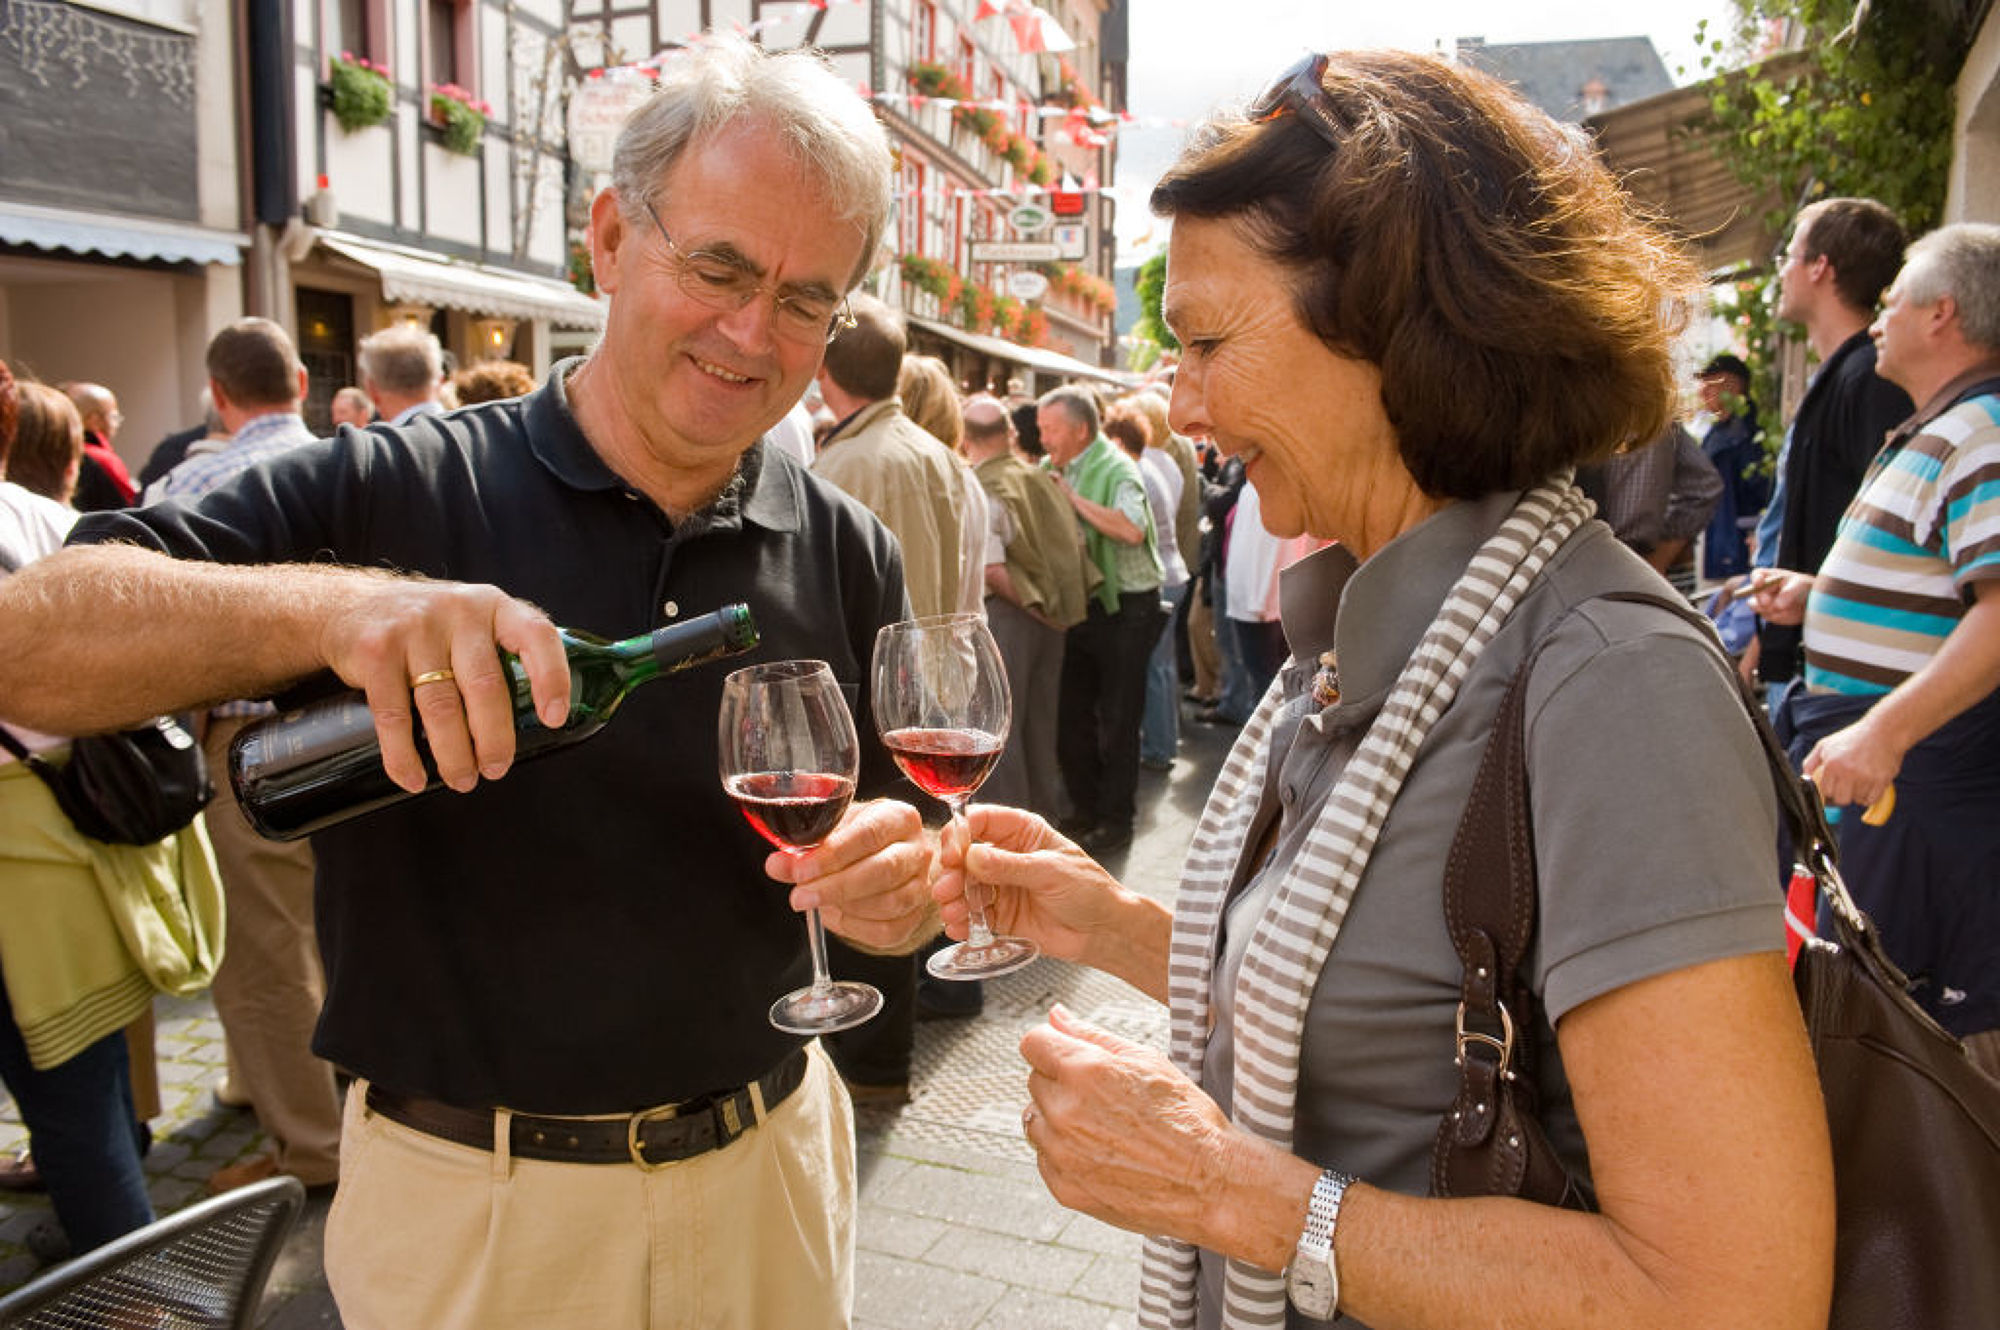 Wine delight at the Ahrweiler Winzerfest, Ahr valley